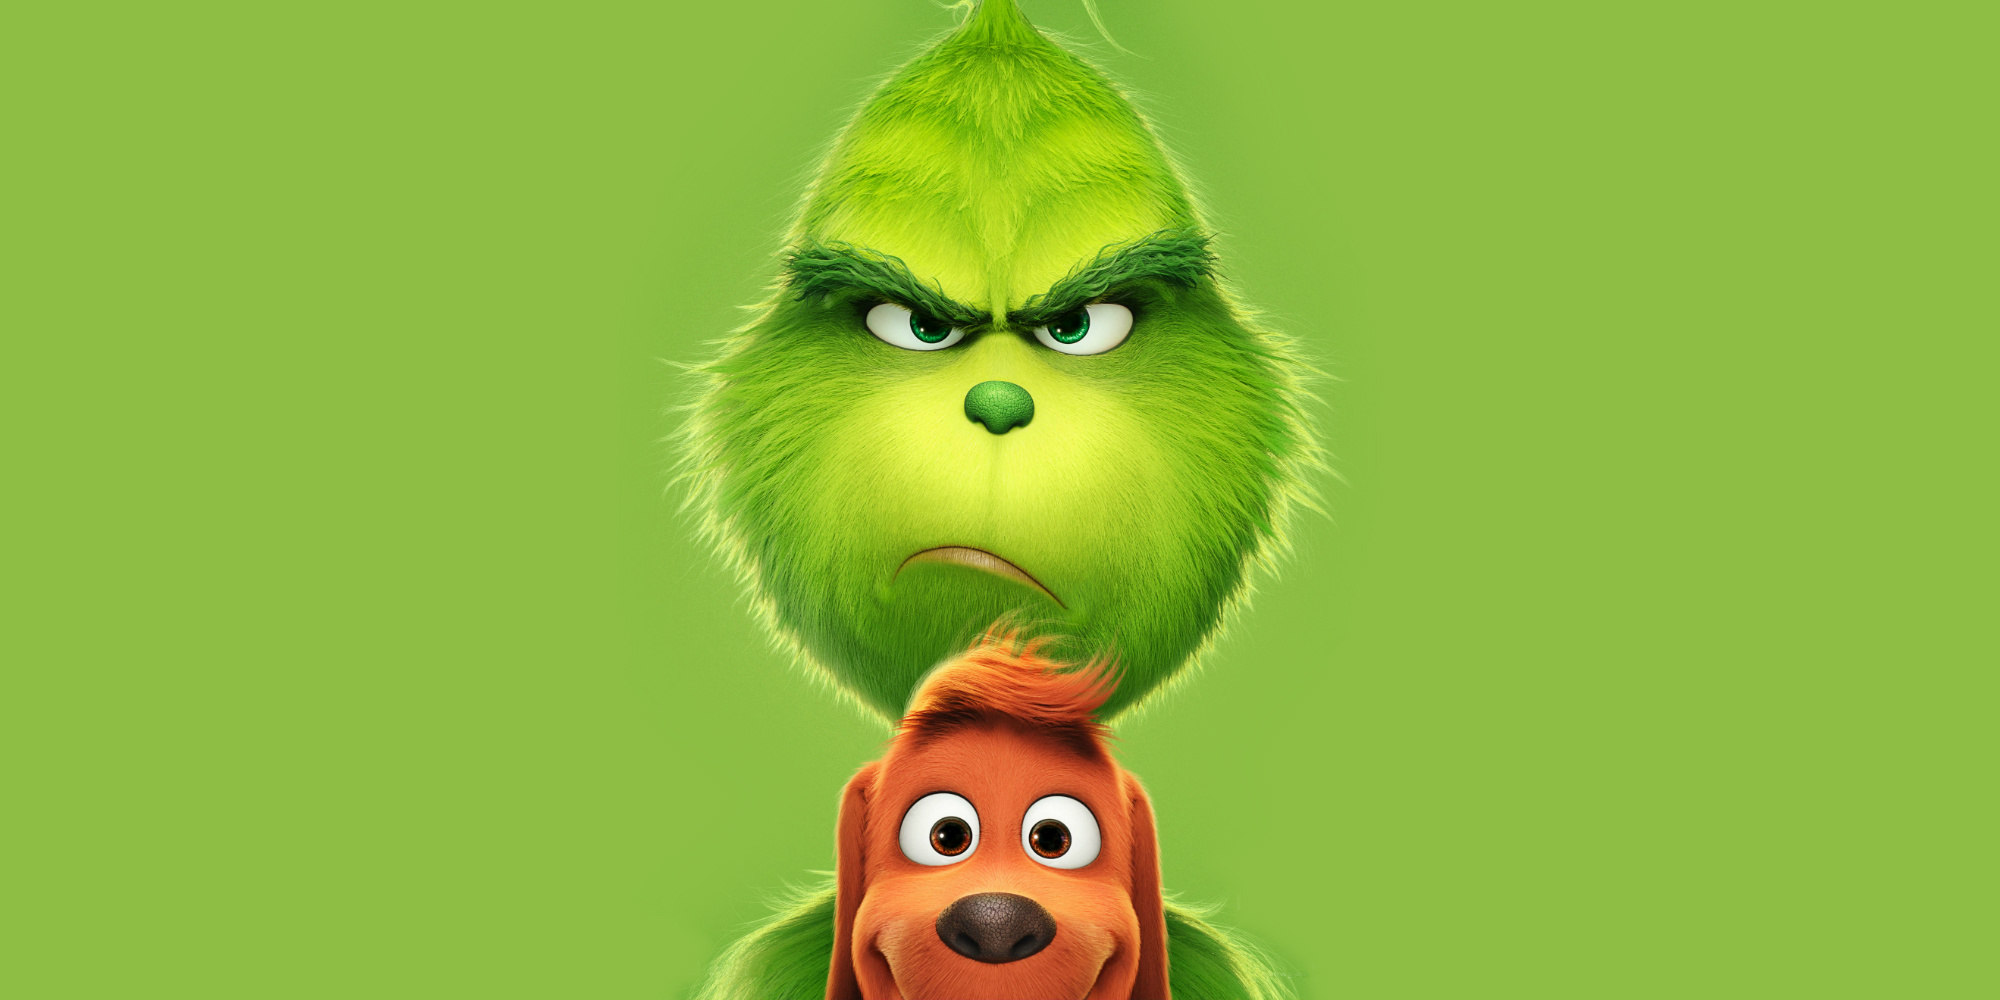 The Grinch/How The Grinch Stole Christmas (2018) News & Info